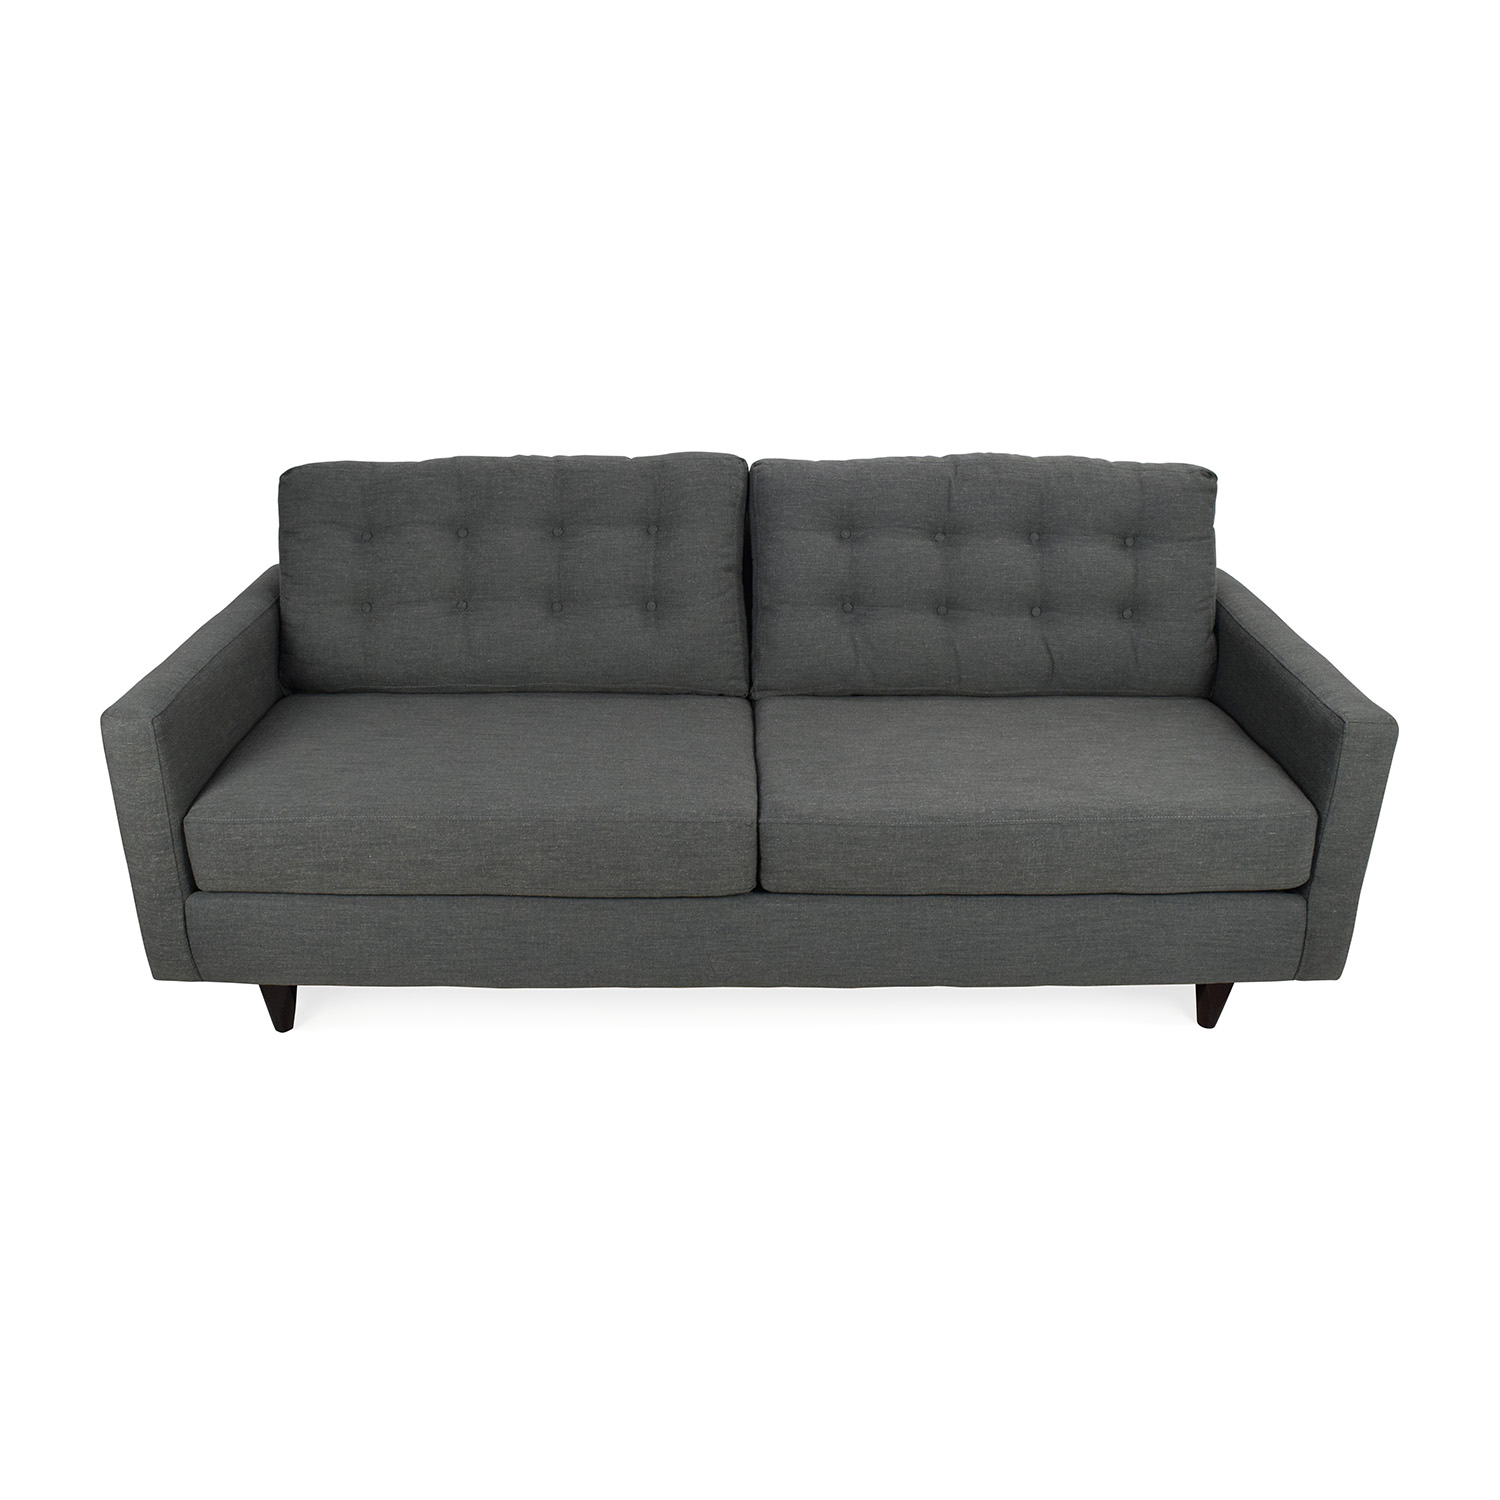 Wayfair Wayfair Harper Midcentury Sofa price